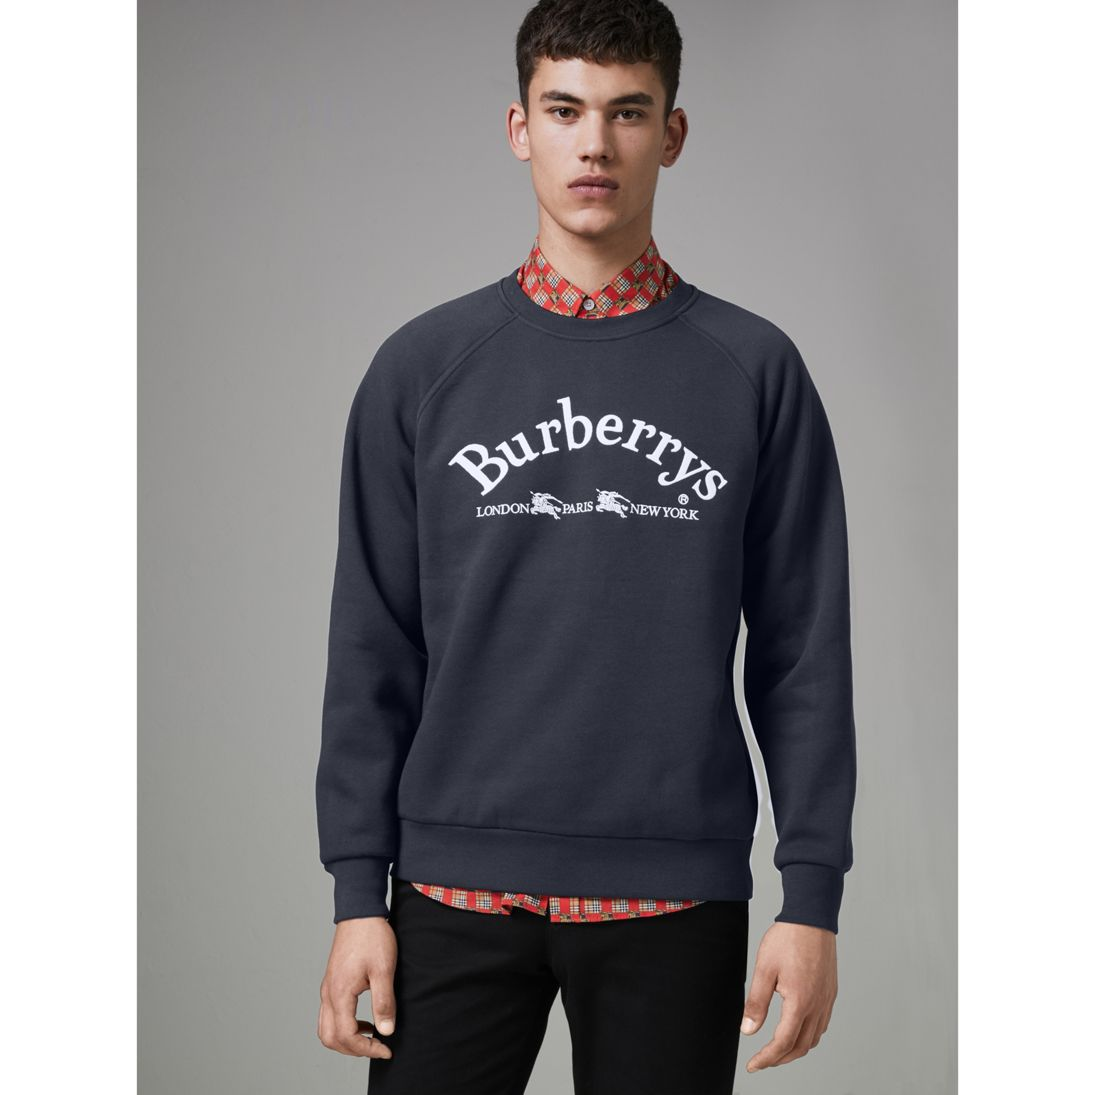 Archive Sweatshirt - This sweatshirt goes up to size XXXL and is, ostensibly, stretchy.  It just might fit (even if, at $450, it doesn't fit my idea of what a sweatshirt should cost).